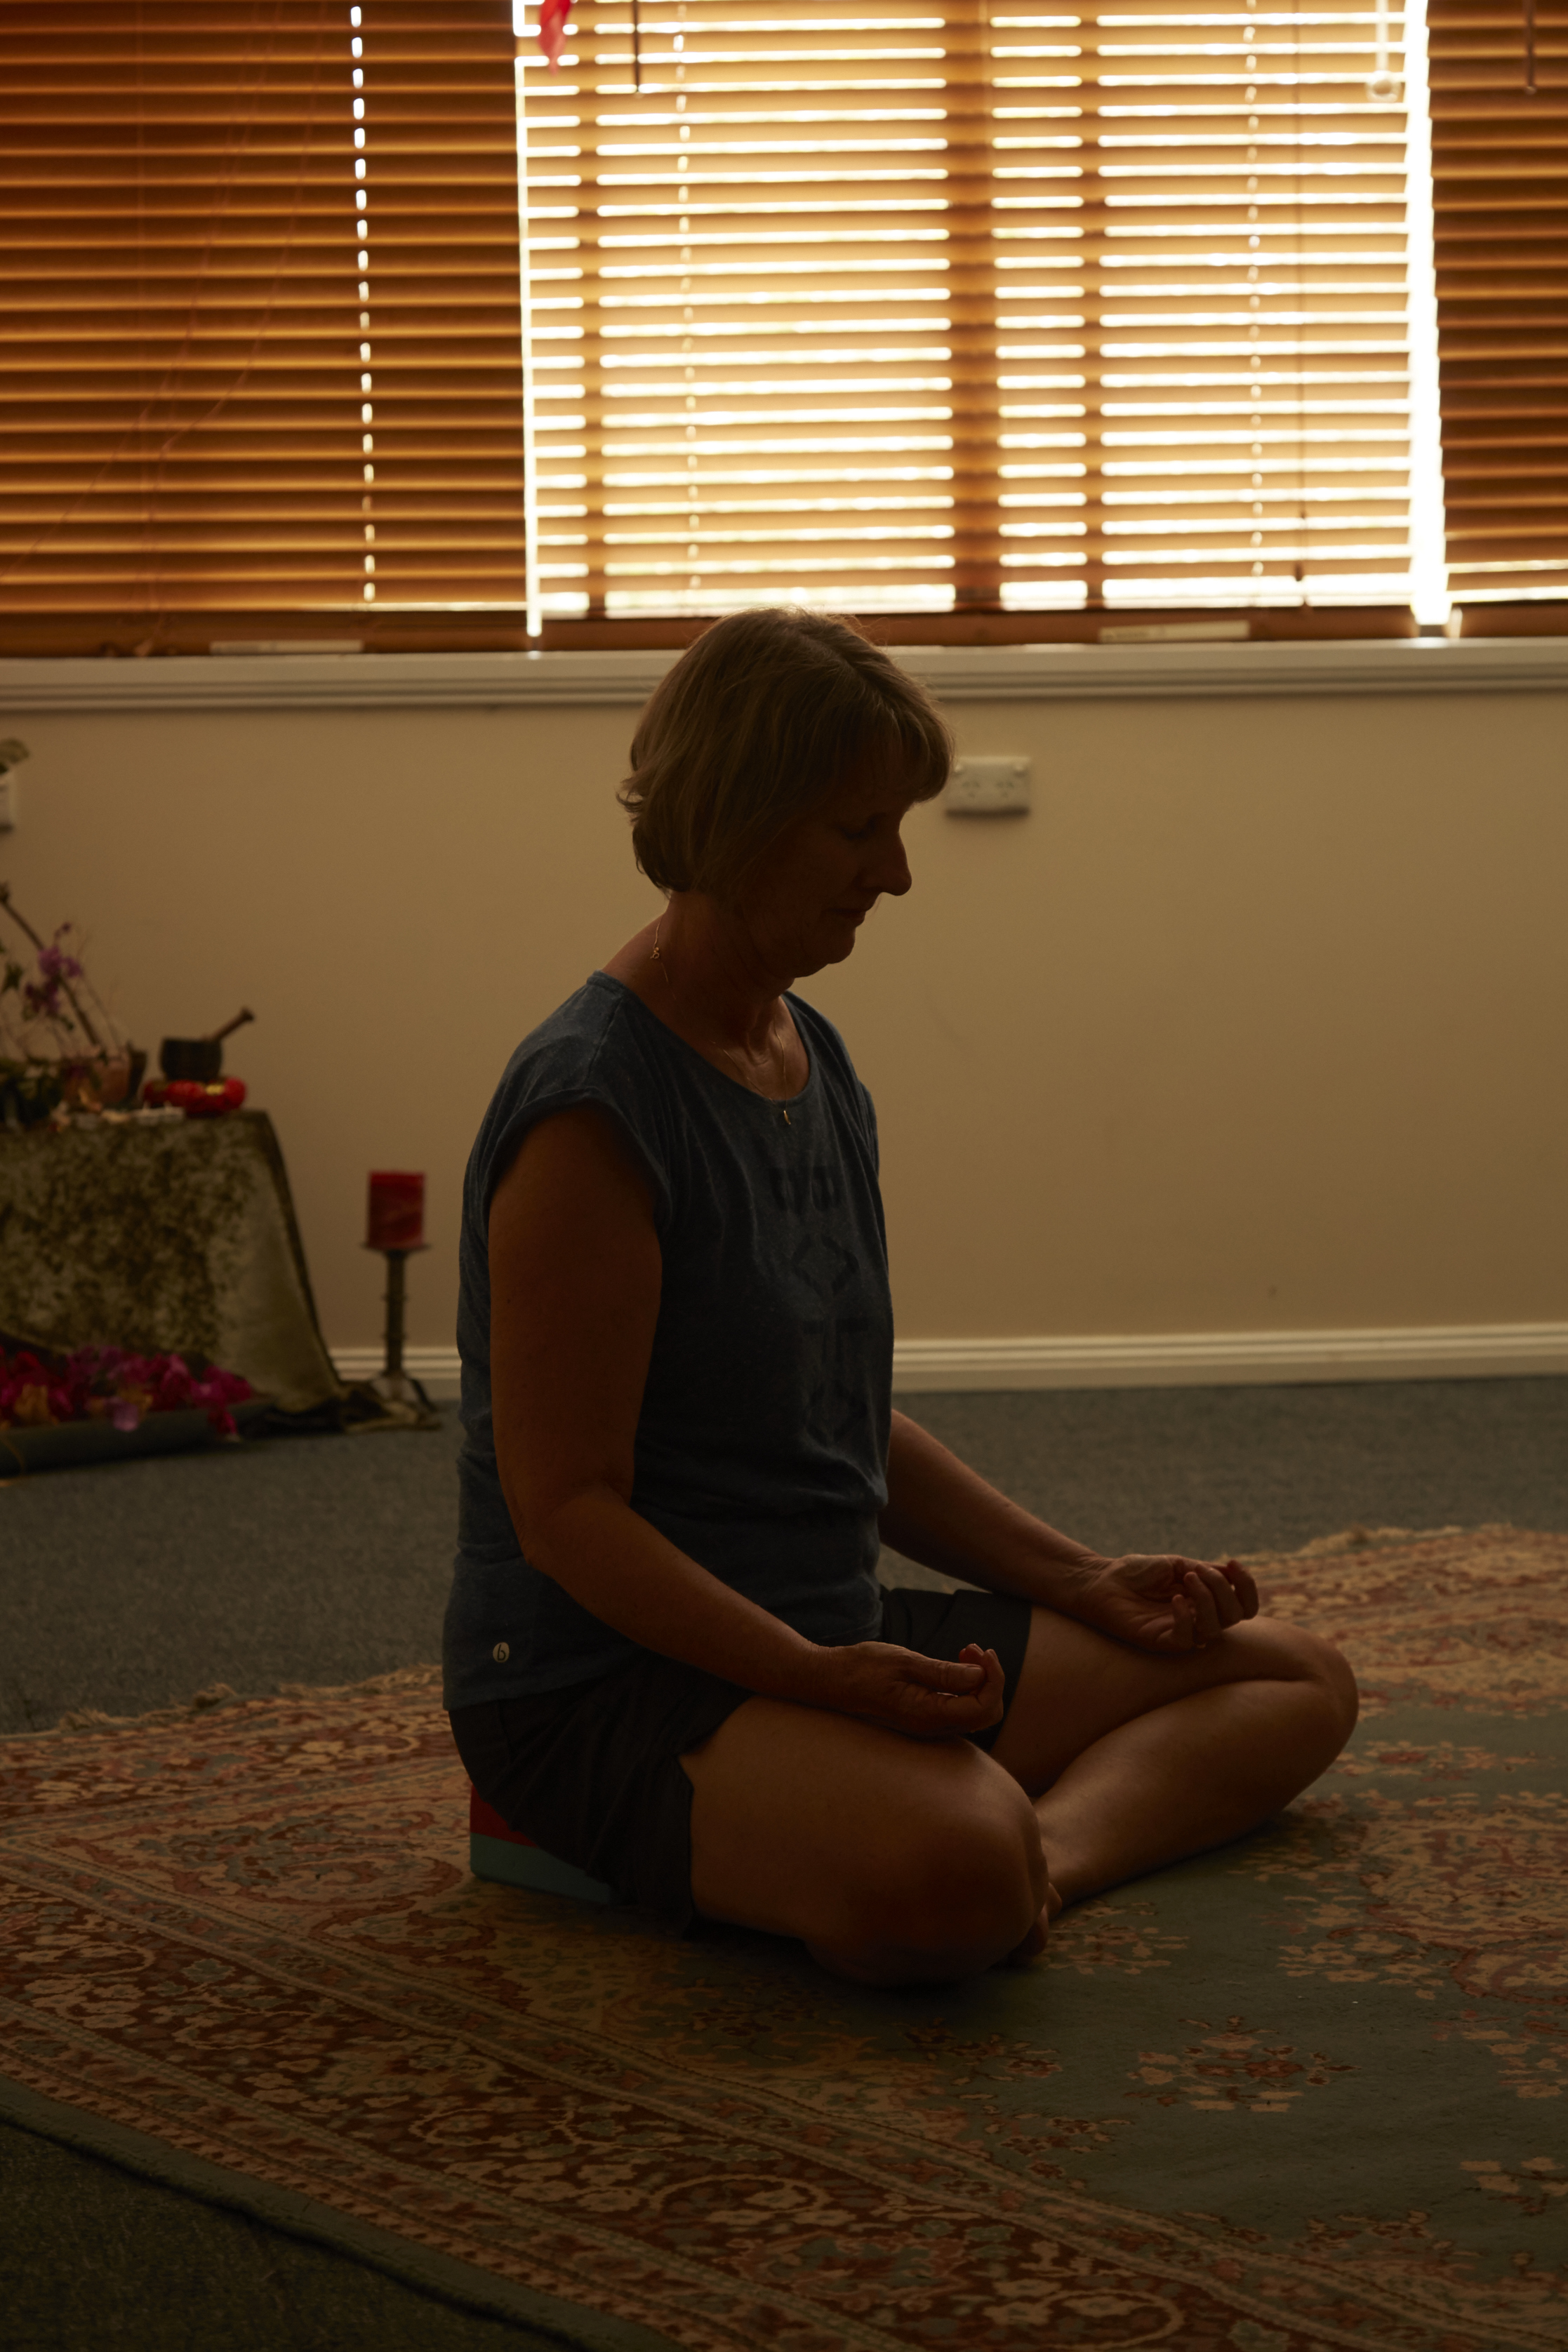 Keeping Meditation Simple - If you CAn BREATH you CAN MeditatE